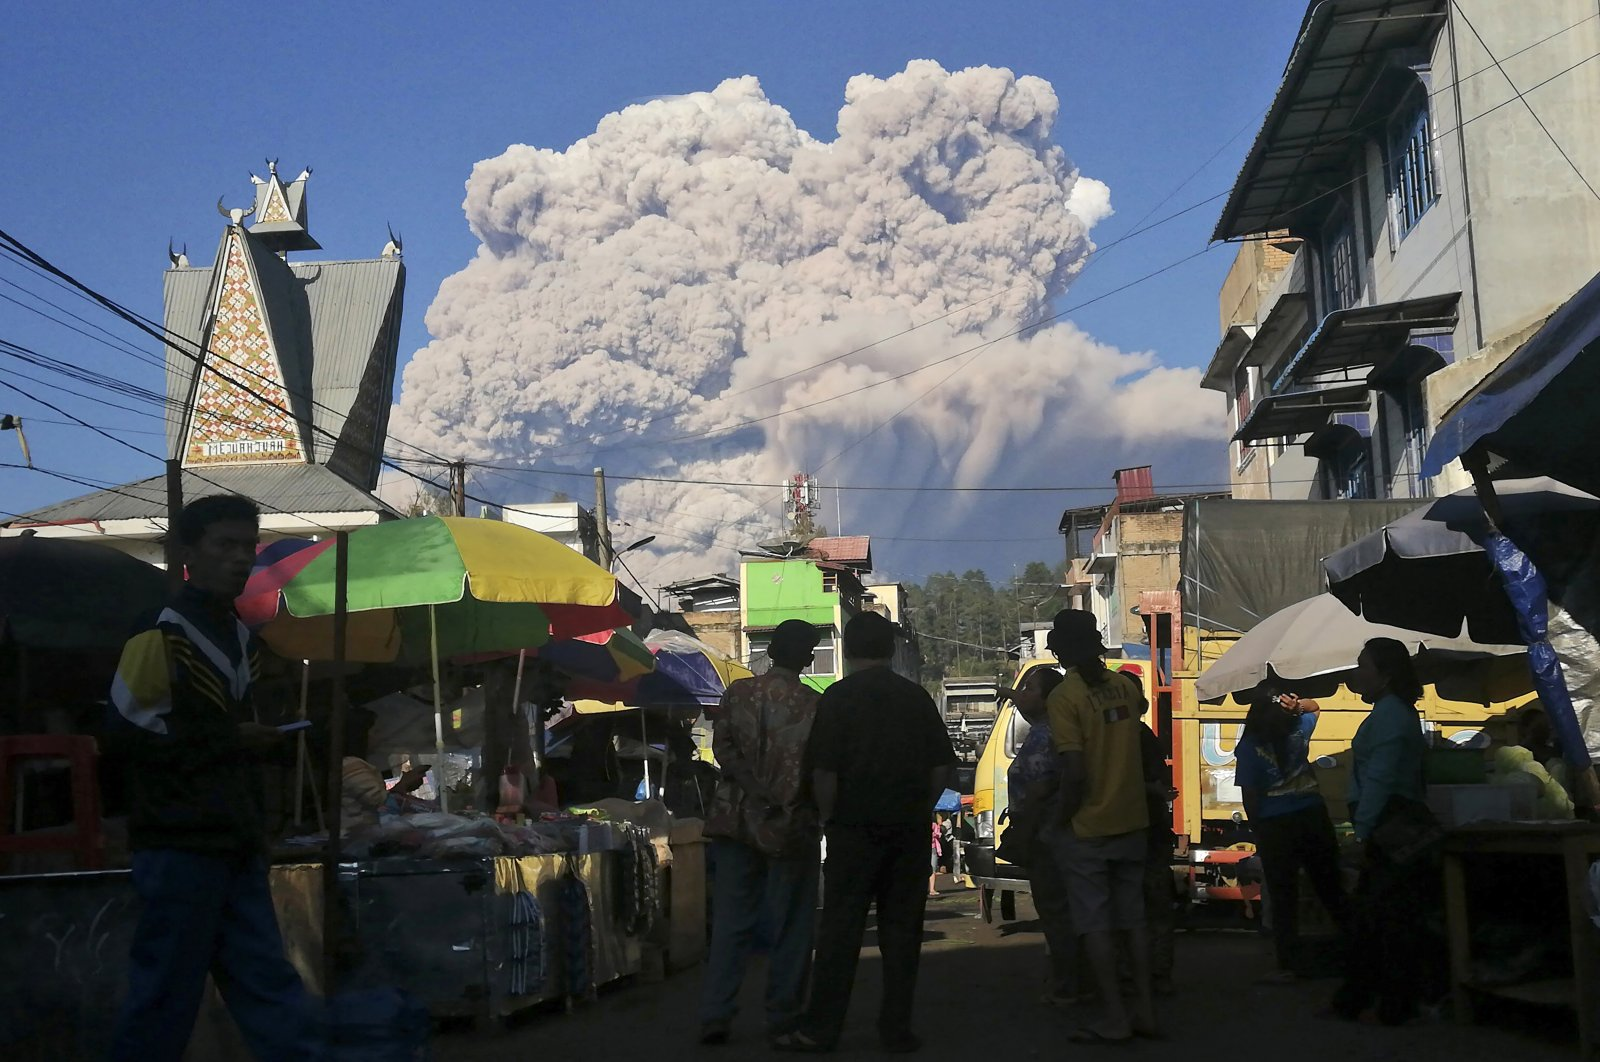 People watch as Mount Sinabung spews volcanic material during an eruption, at a market in Karo, North Sumatra, Indonesia, Tuesday, March 2, 2021. (AP Photo)